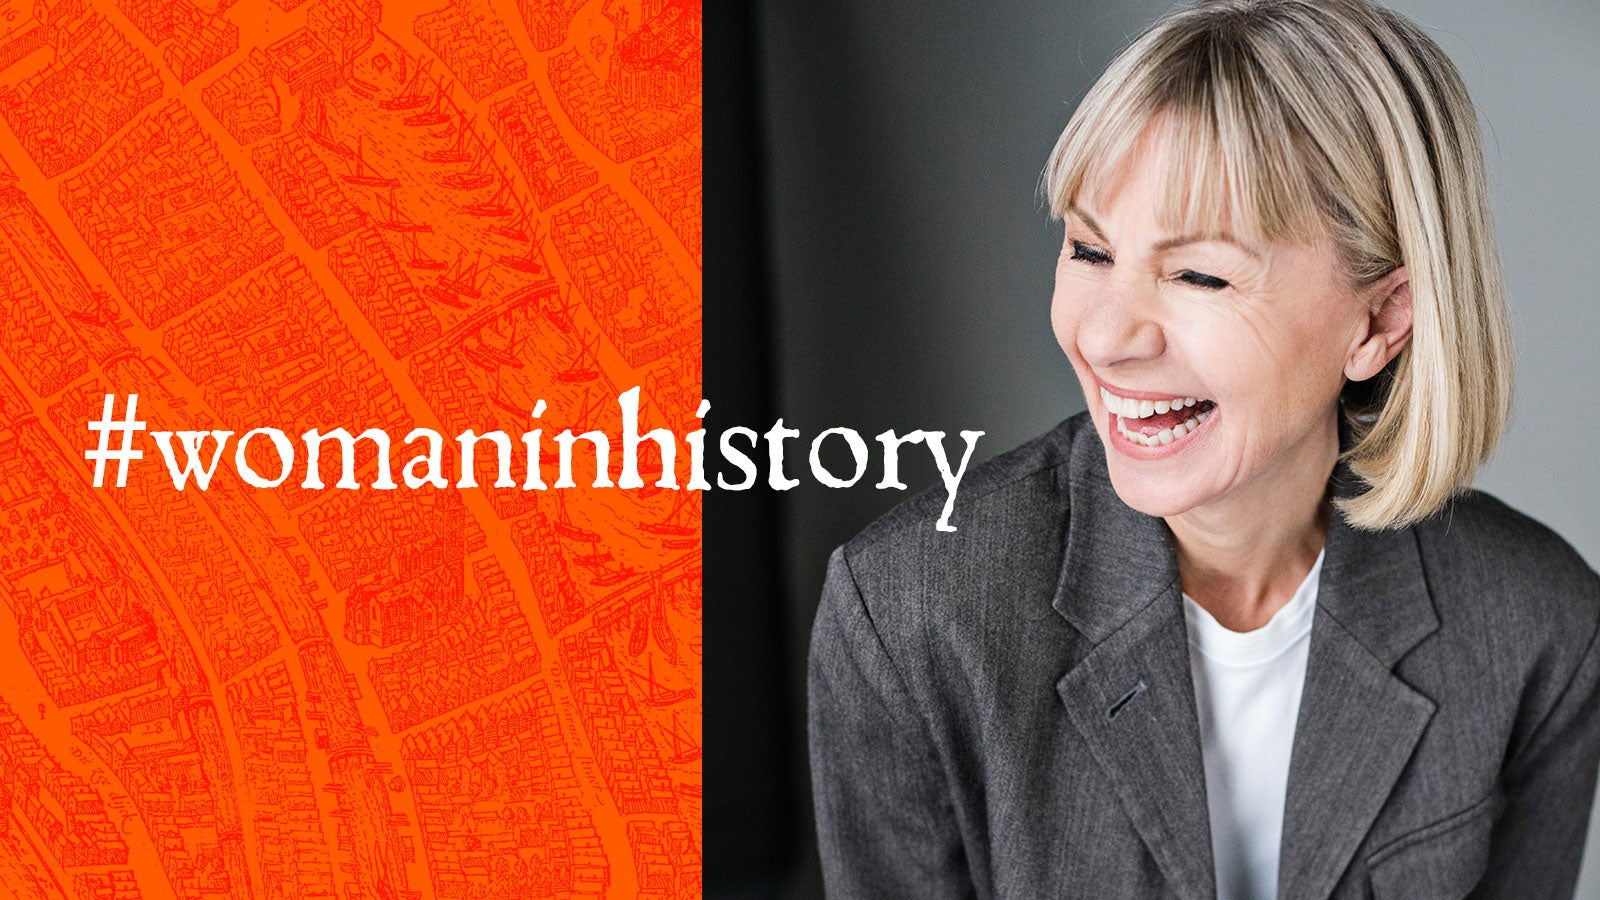 Author Kate Mosse laughing, next to the words #womaninhistory